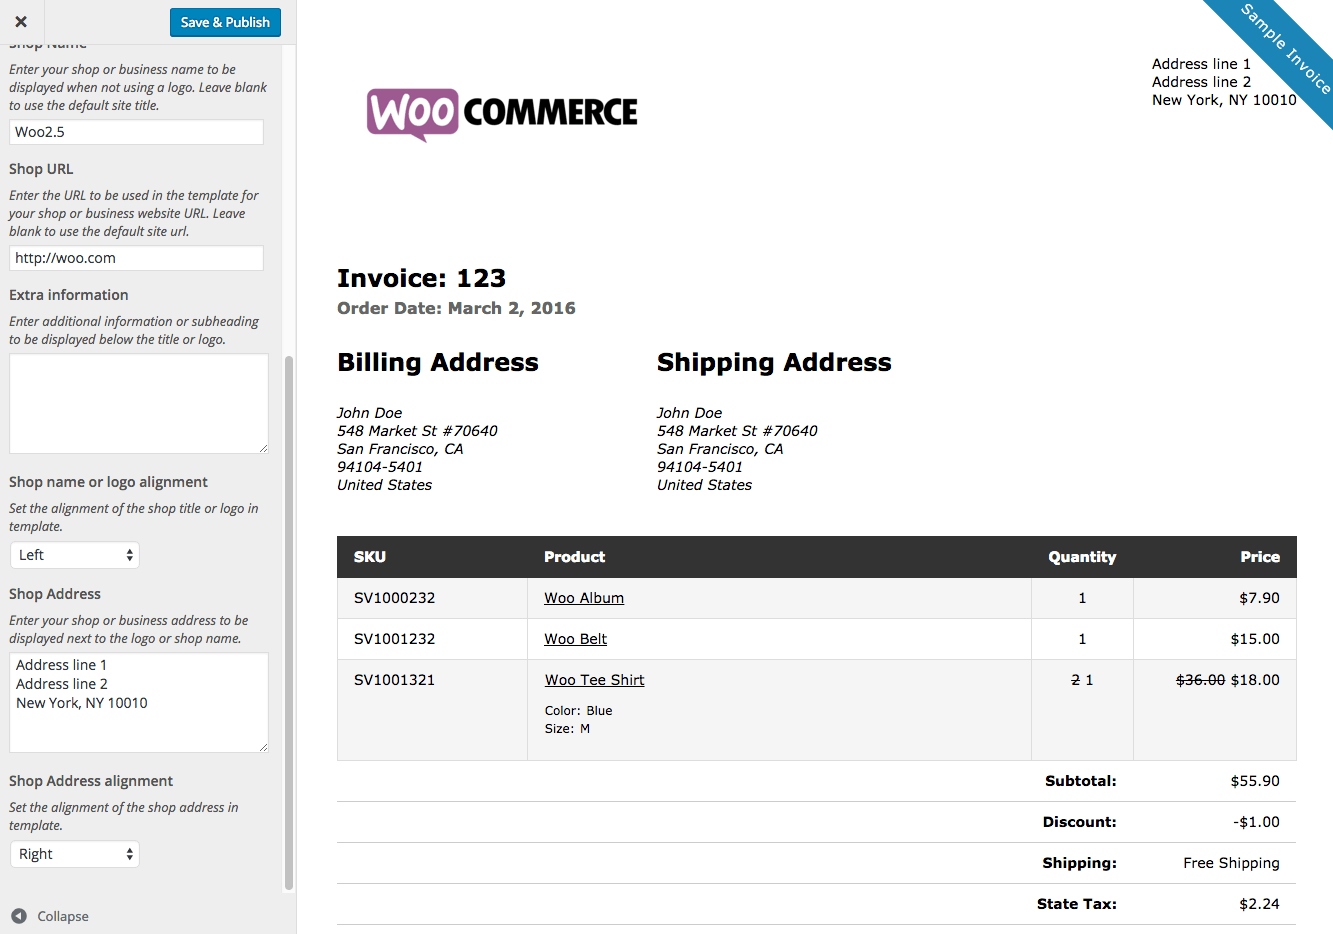 Soulfulpowerus  Splendid Woocommerce Print Invoices Amp Packing Lists  Woocommerce Docs With Licious Woocommerce Print Invoices  Packing Lists Customizer With Amusing Dymo Receipt Printer Also Internal Controls Cash Receipts In Addition How To Make A Sales Receipt And Lost Post Office Receipt As Well As Merchandise Receipt Template Additionally Prime Rib Receipt From Docswoocommercecom With Soulfulpowerus  Licious Woocommerce Print Invoices Amp Packing Lists  Woocommerce Docs With Amusing Woocommerce Print Invoices  Packing Lists Customizer And Splendid Dymo Receipt Printer Also Internal Controls Cash Receipts In Addition How To Make A Sales Receipt From Docswoocommercecom